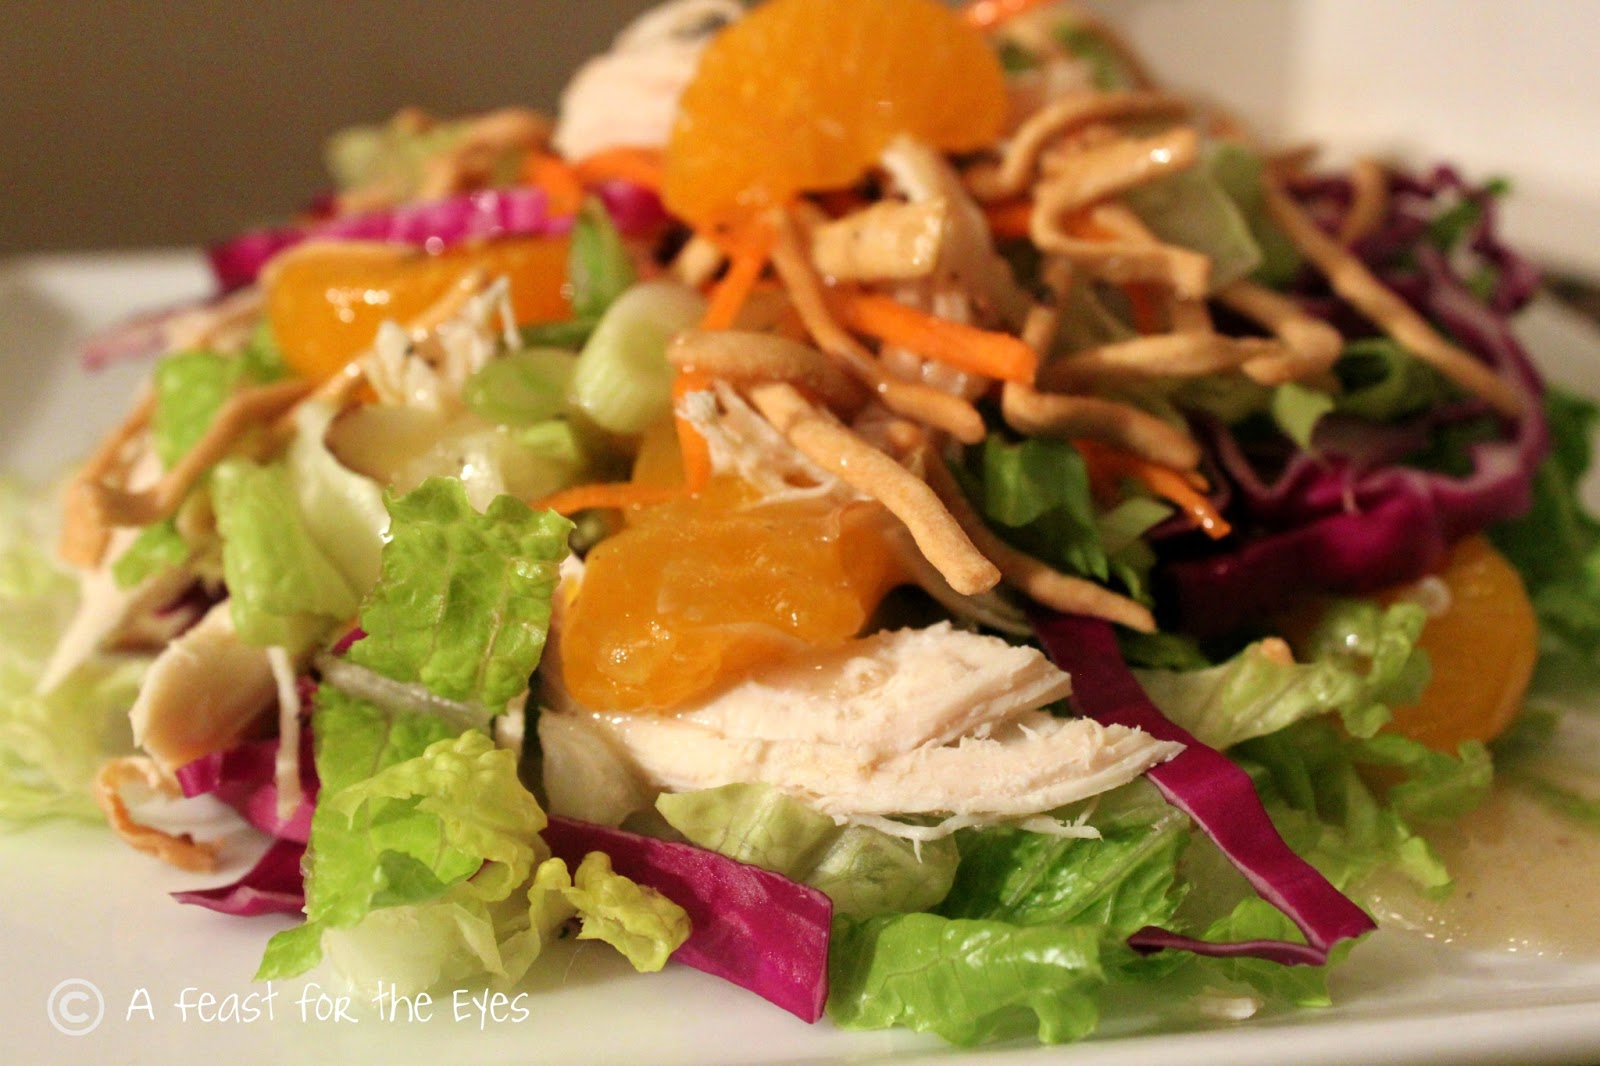 Feast for the Eyes: Easy Chinese Chicken Salad, Made Lite